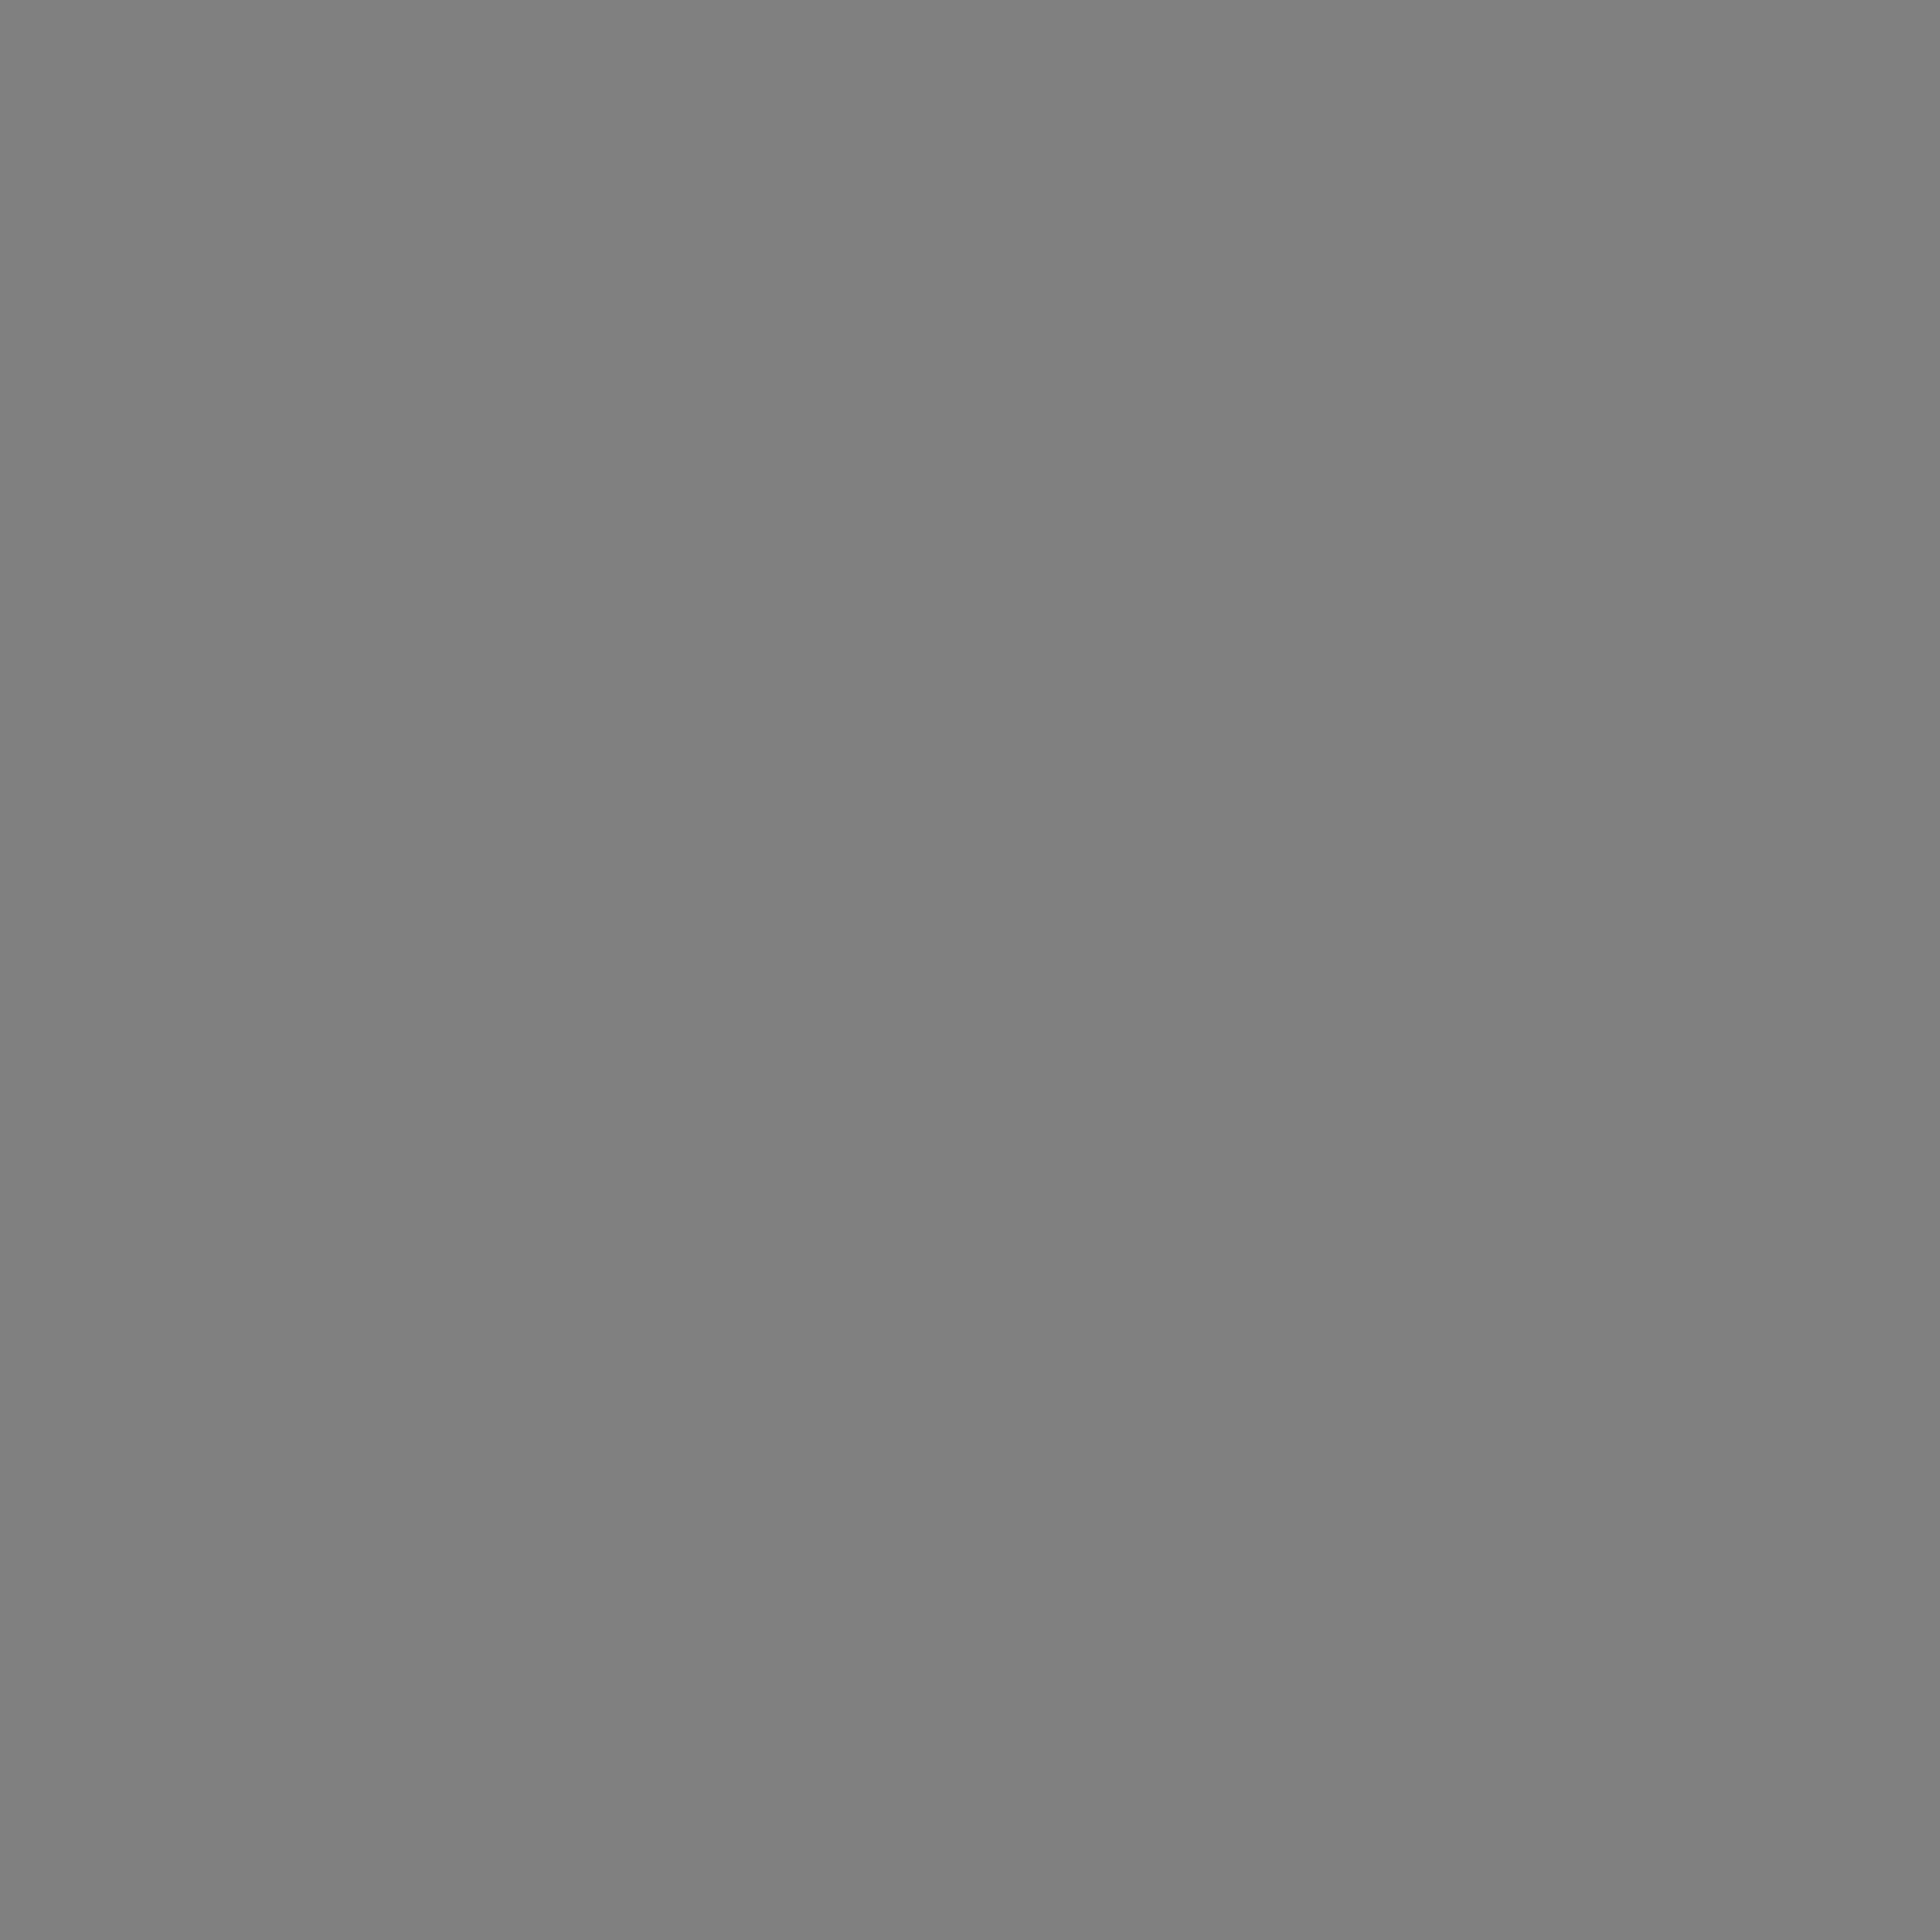 3600x3600 Trolley Grey Solid Color Background